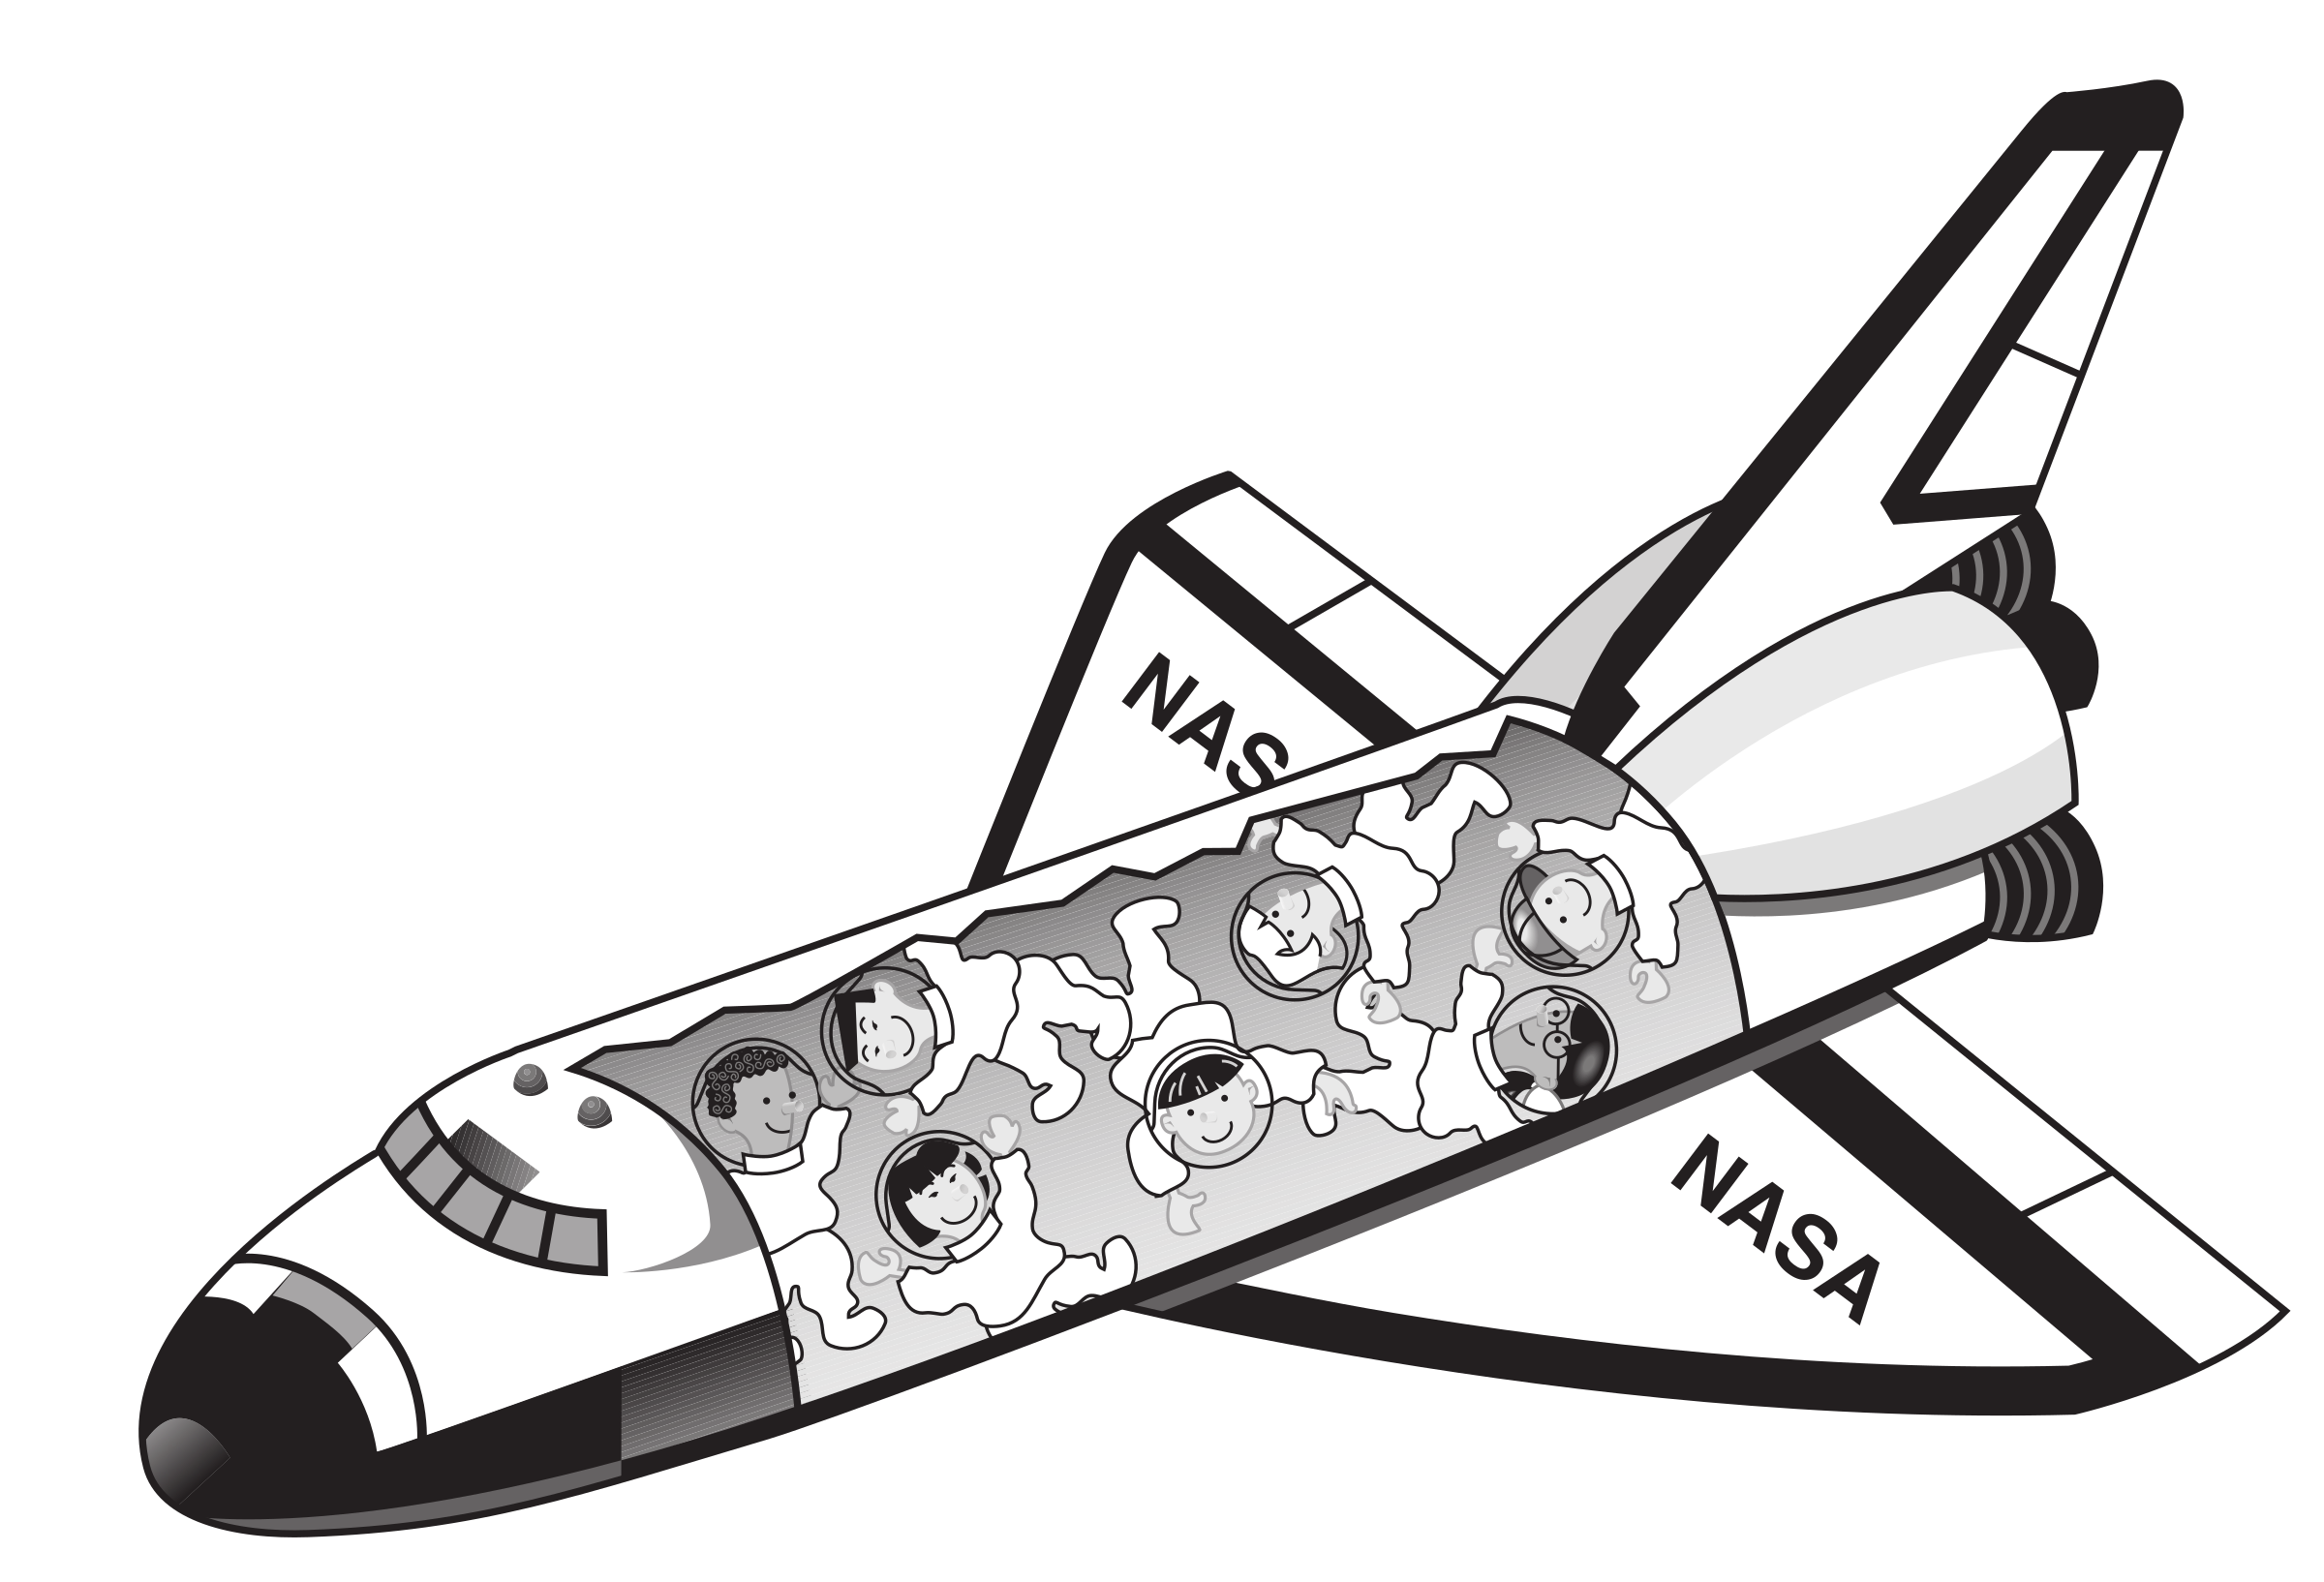 space shuttle spaceship vector clipart image free stock Resolution Clip Art High Resolution Borders